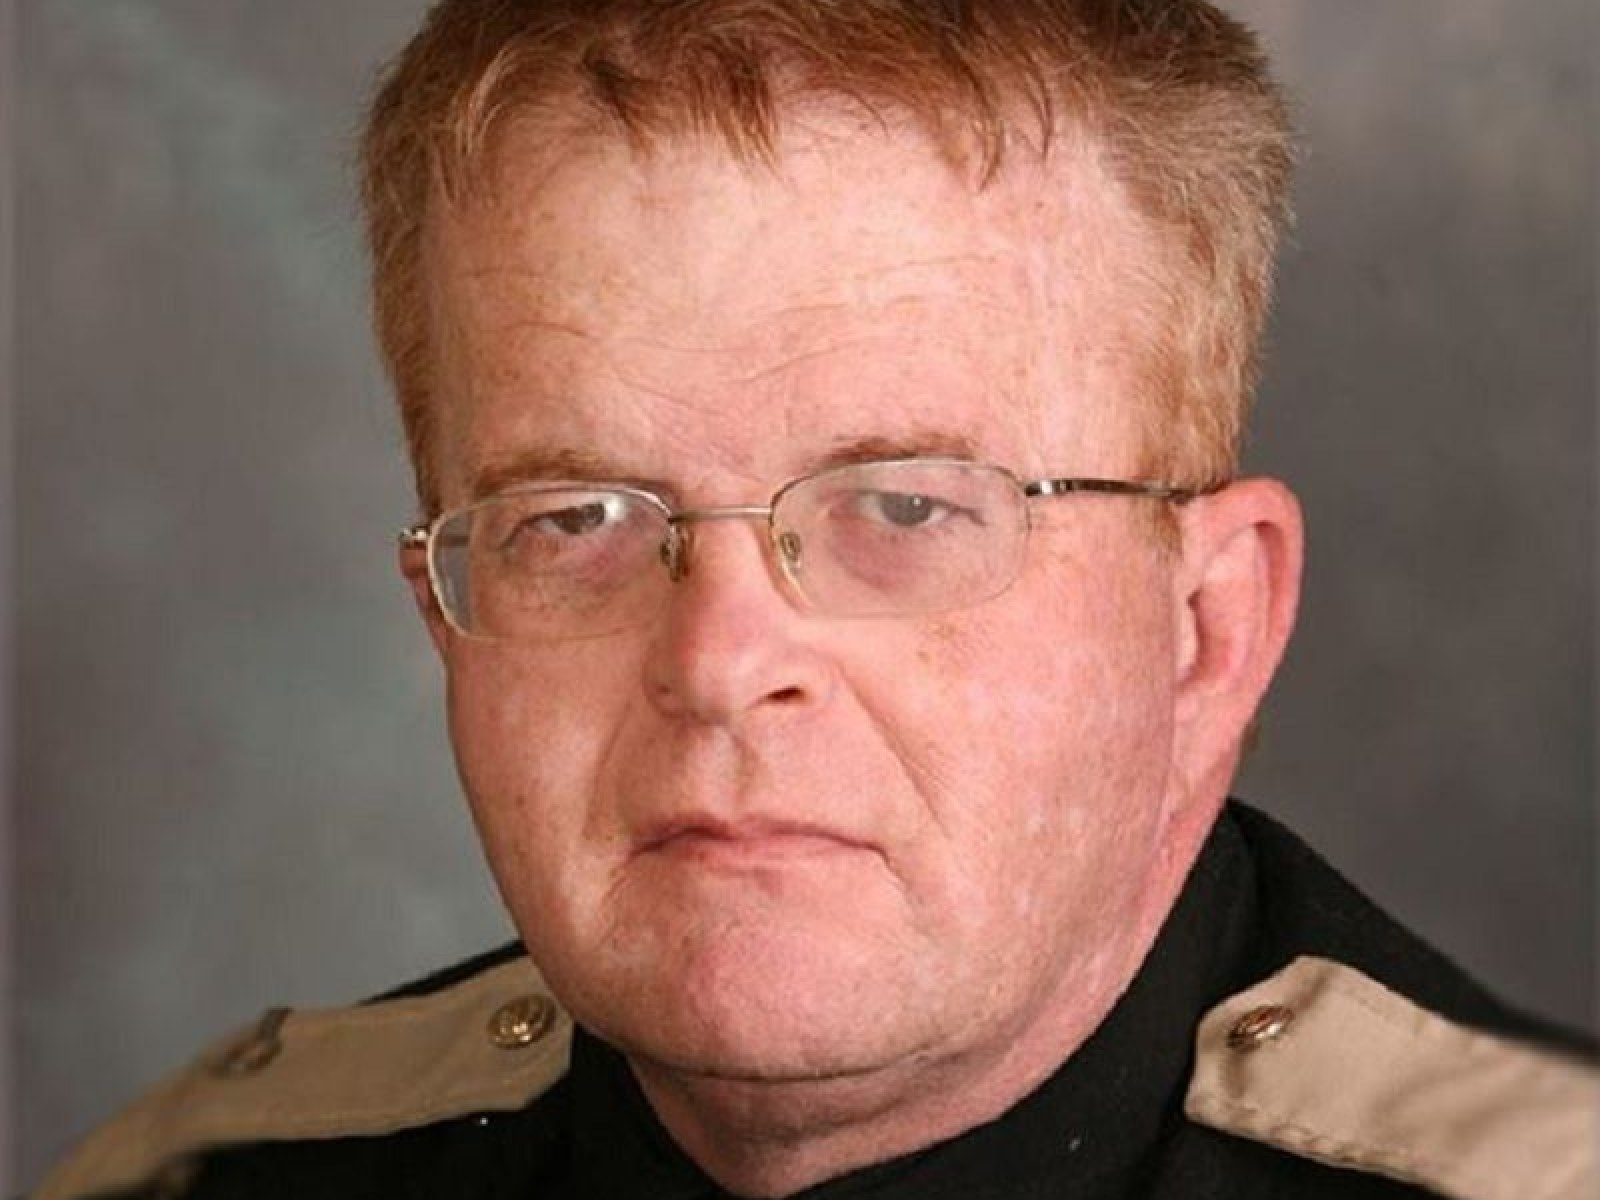 Kentucky Sheriff Accused of Raiding Drug Drop Box for His Own